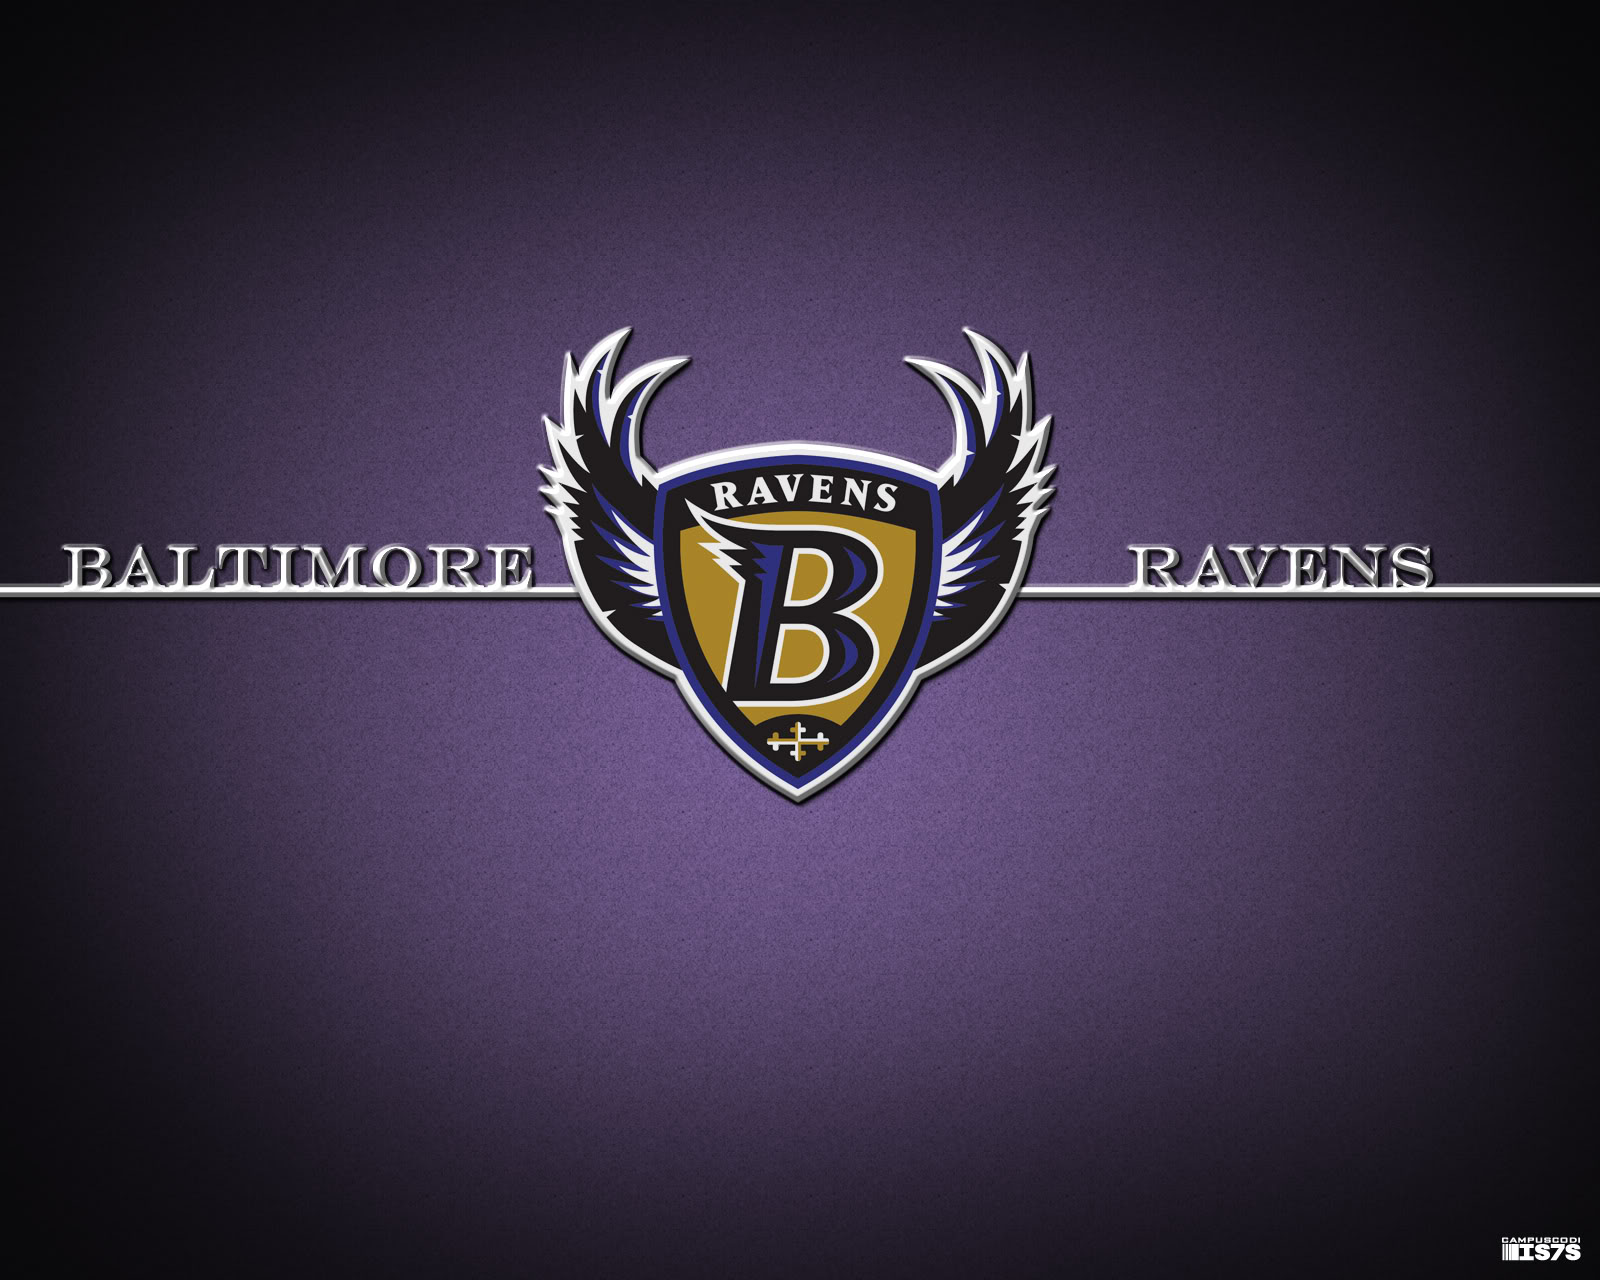 Baltimore Ravens wallpaper HD desktop wallpaper Baltimore Ravens 1600x1280